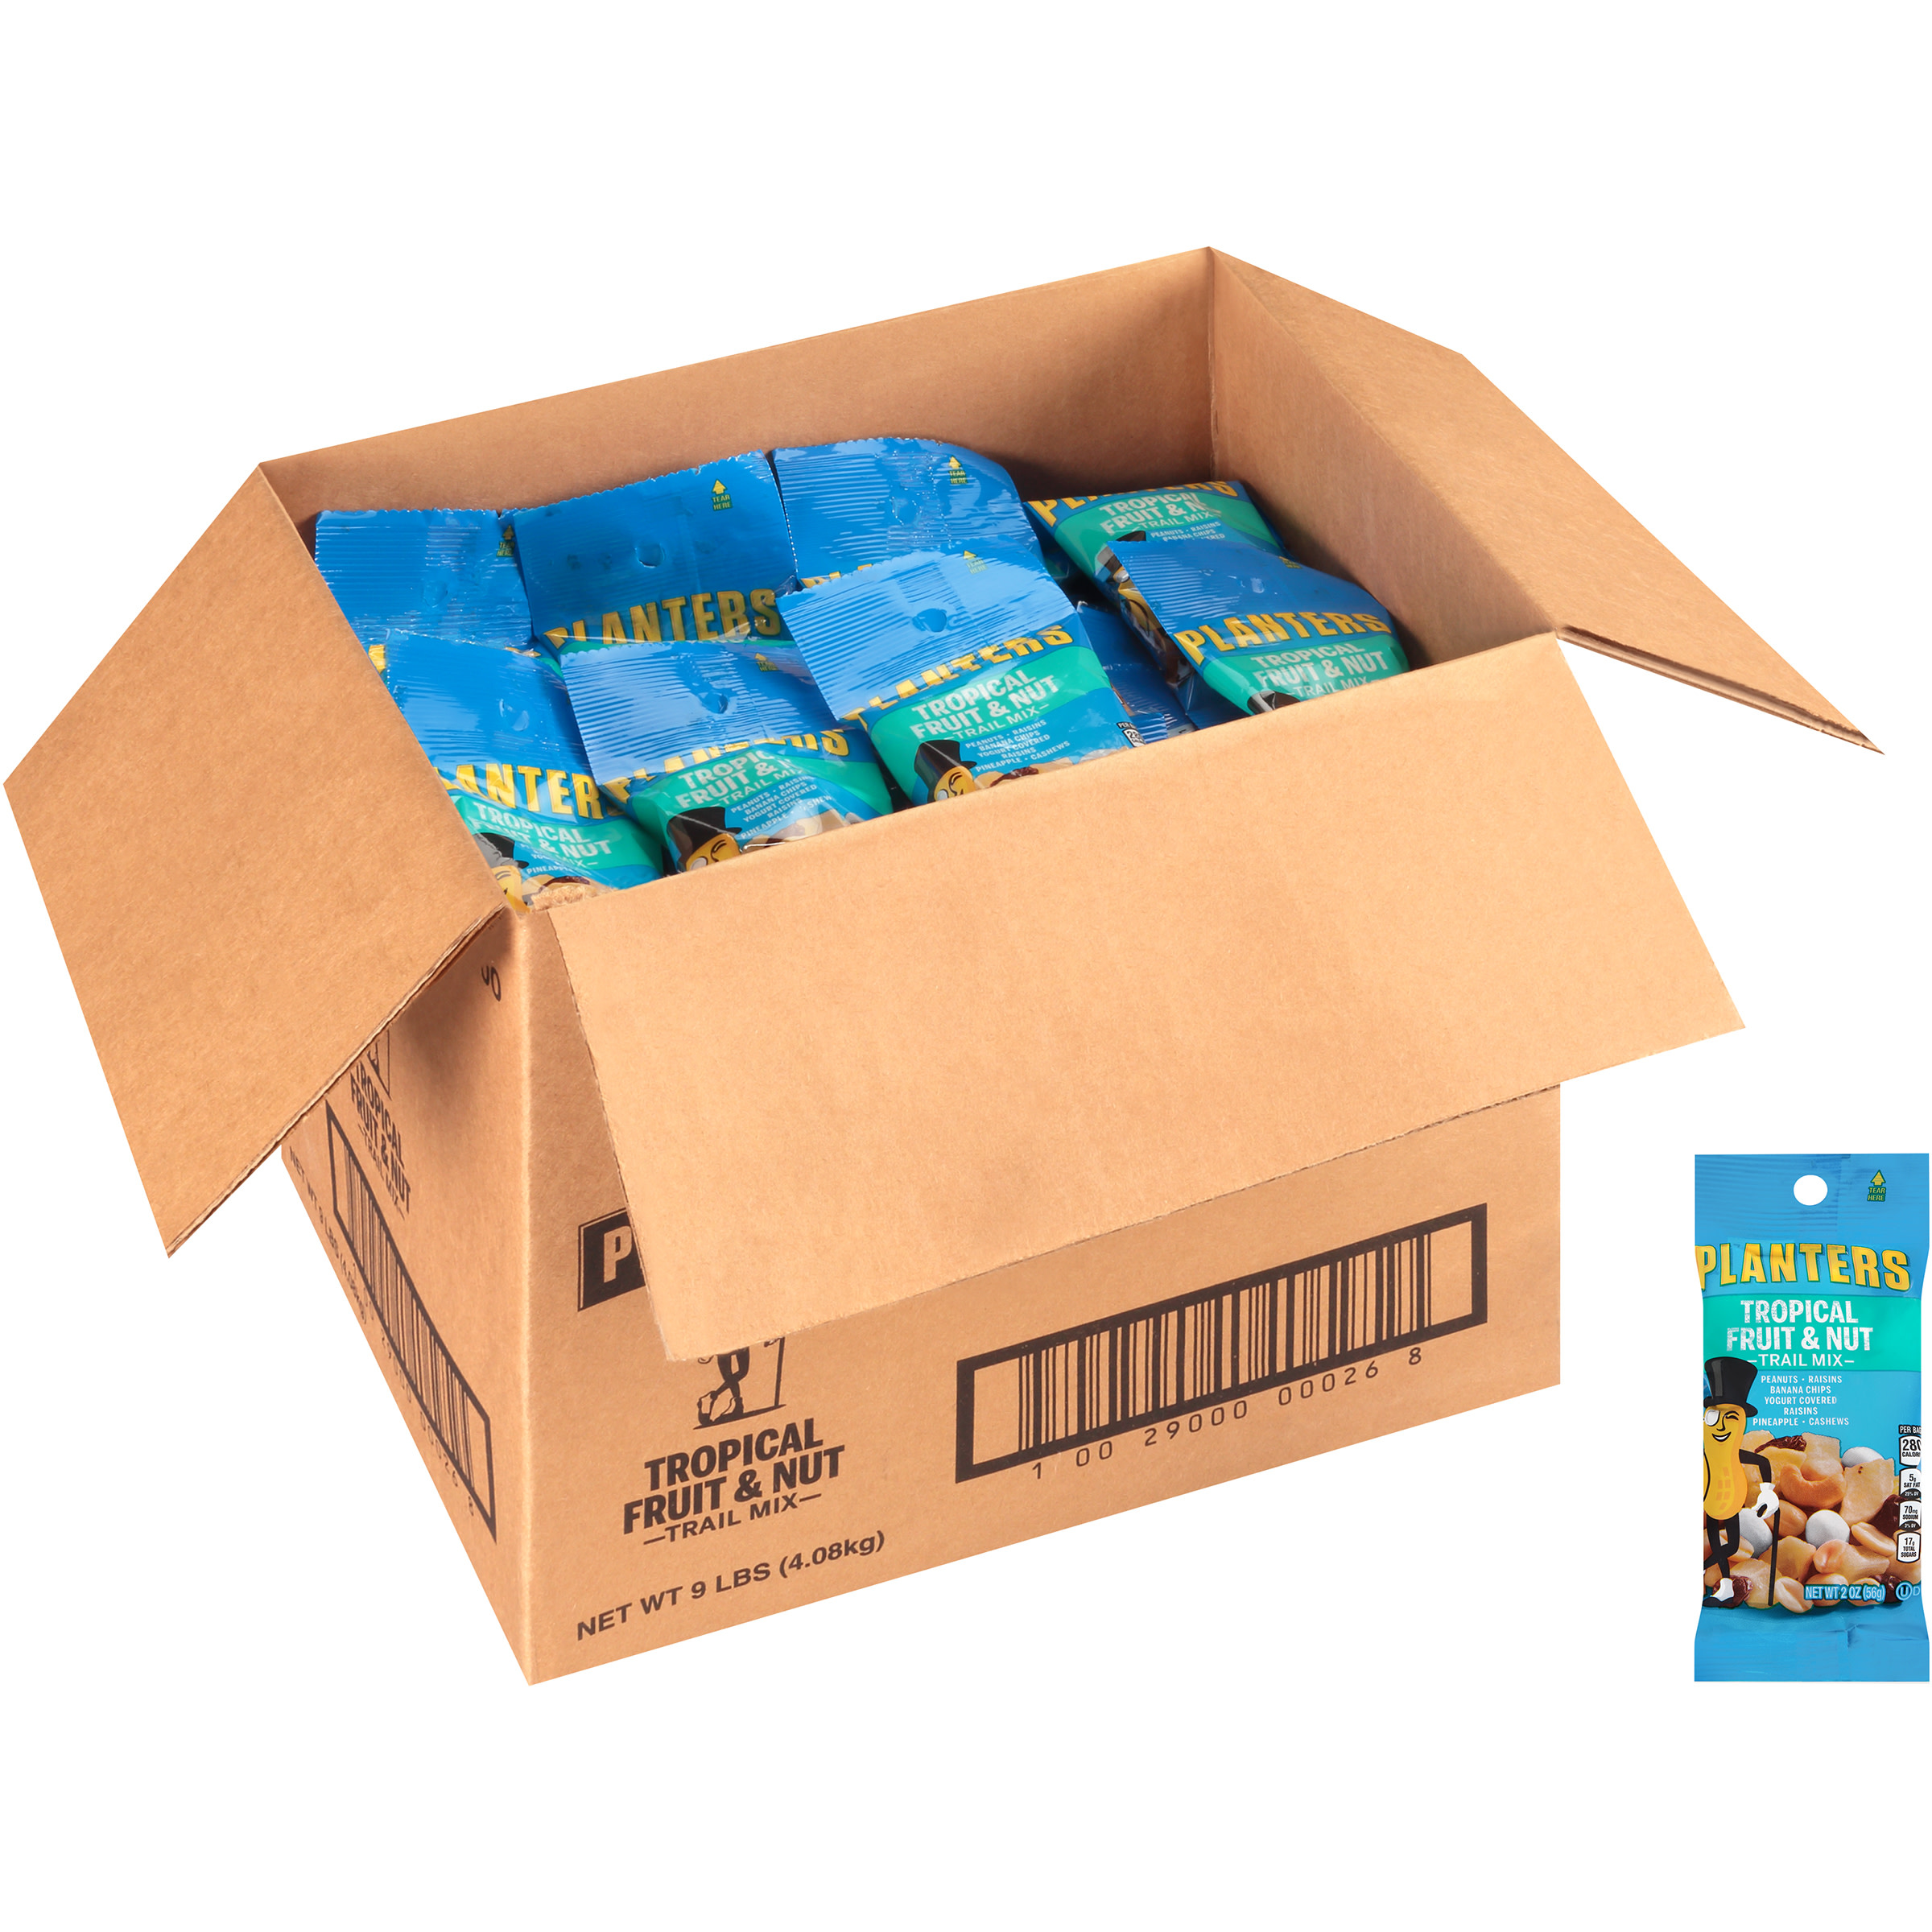 Trail Mix, Tropical Fruit & Nut, 2oz Bag, 72/Carton